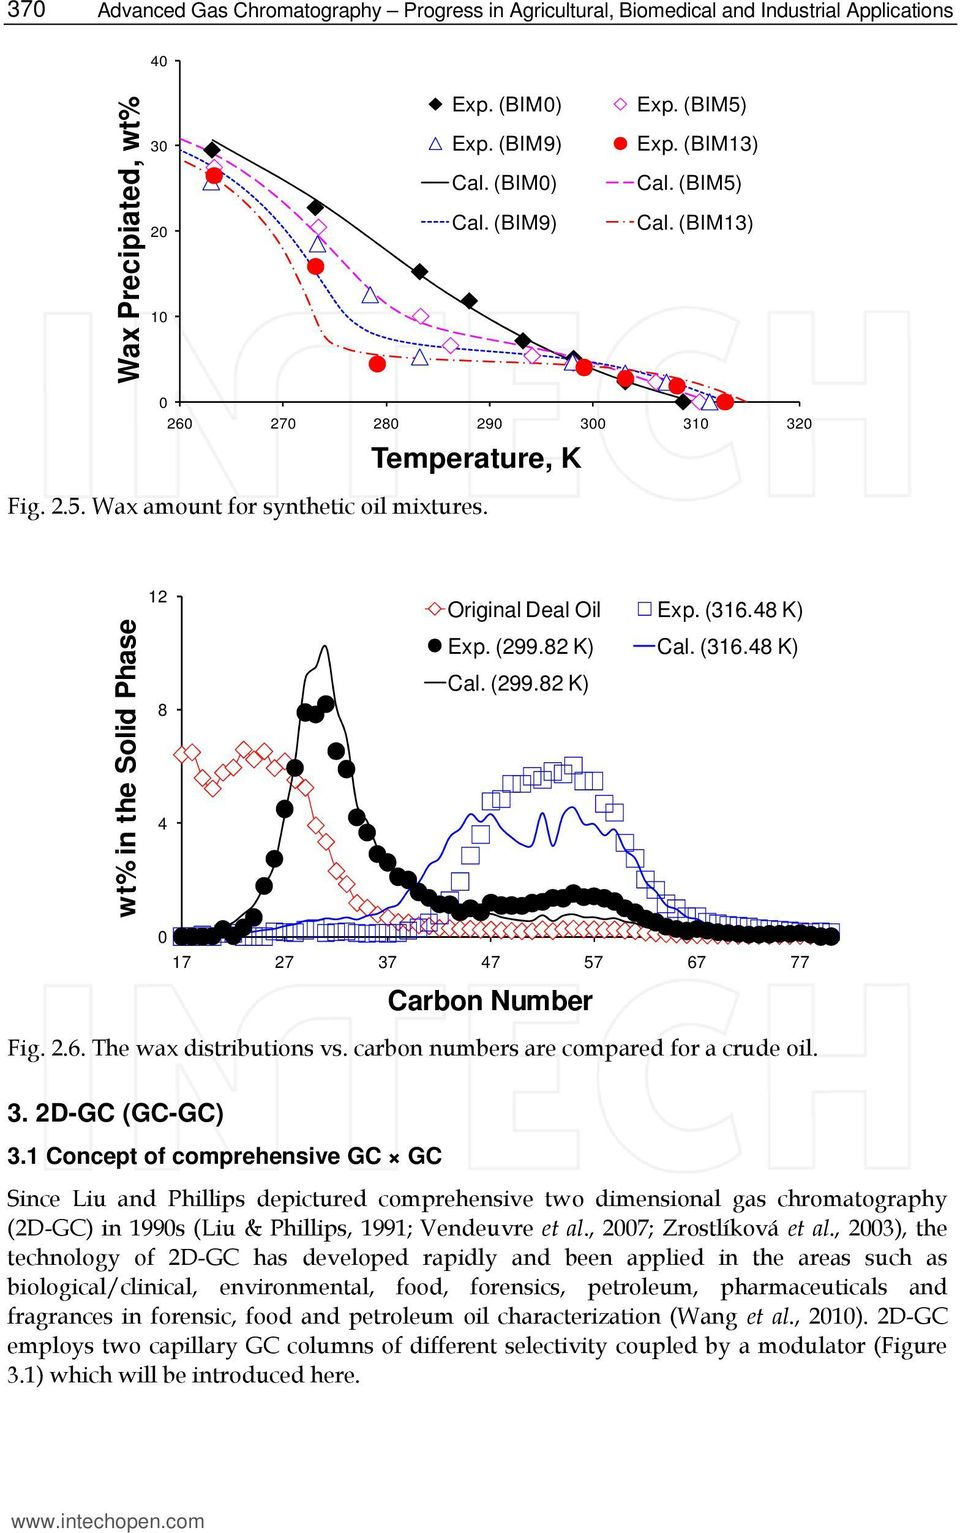 (299.82 K) Cal. (316.48 K) Cal. (299.82 K) 0 17 27 37 47 57 67 77 Carbon Number Fig. 2.6. The wax distributions vs. carbon numbers are compared for a crude oil. 3. 2D-GC (GC-GC) 3.